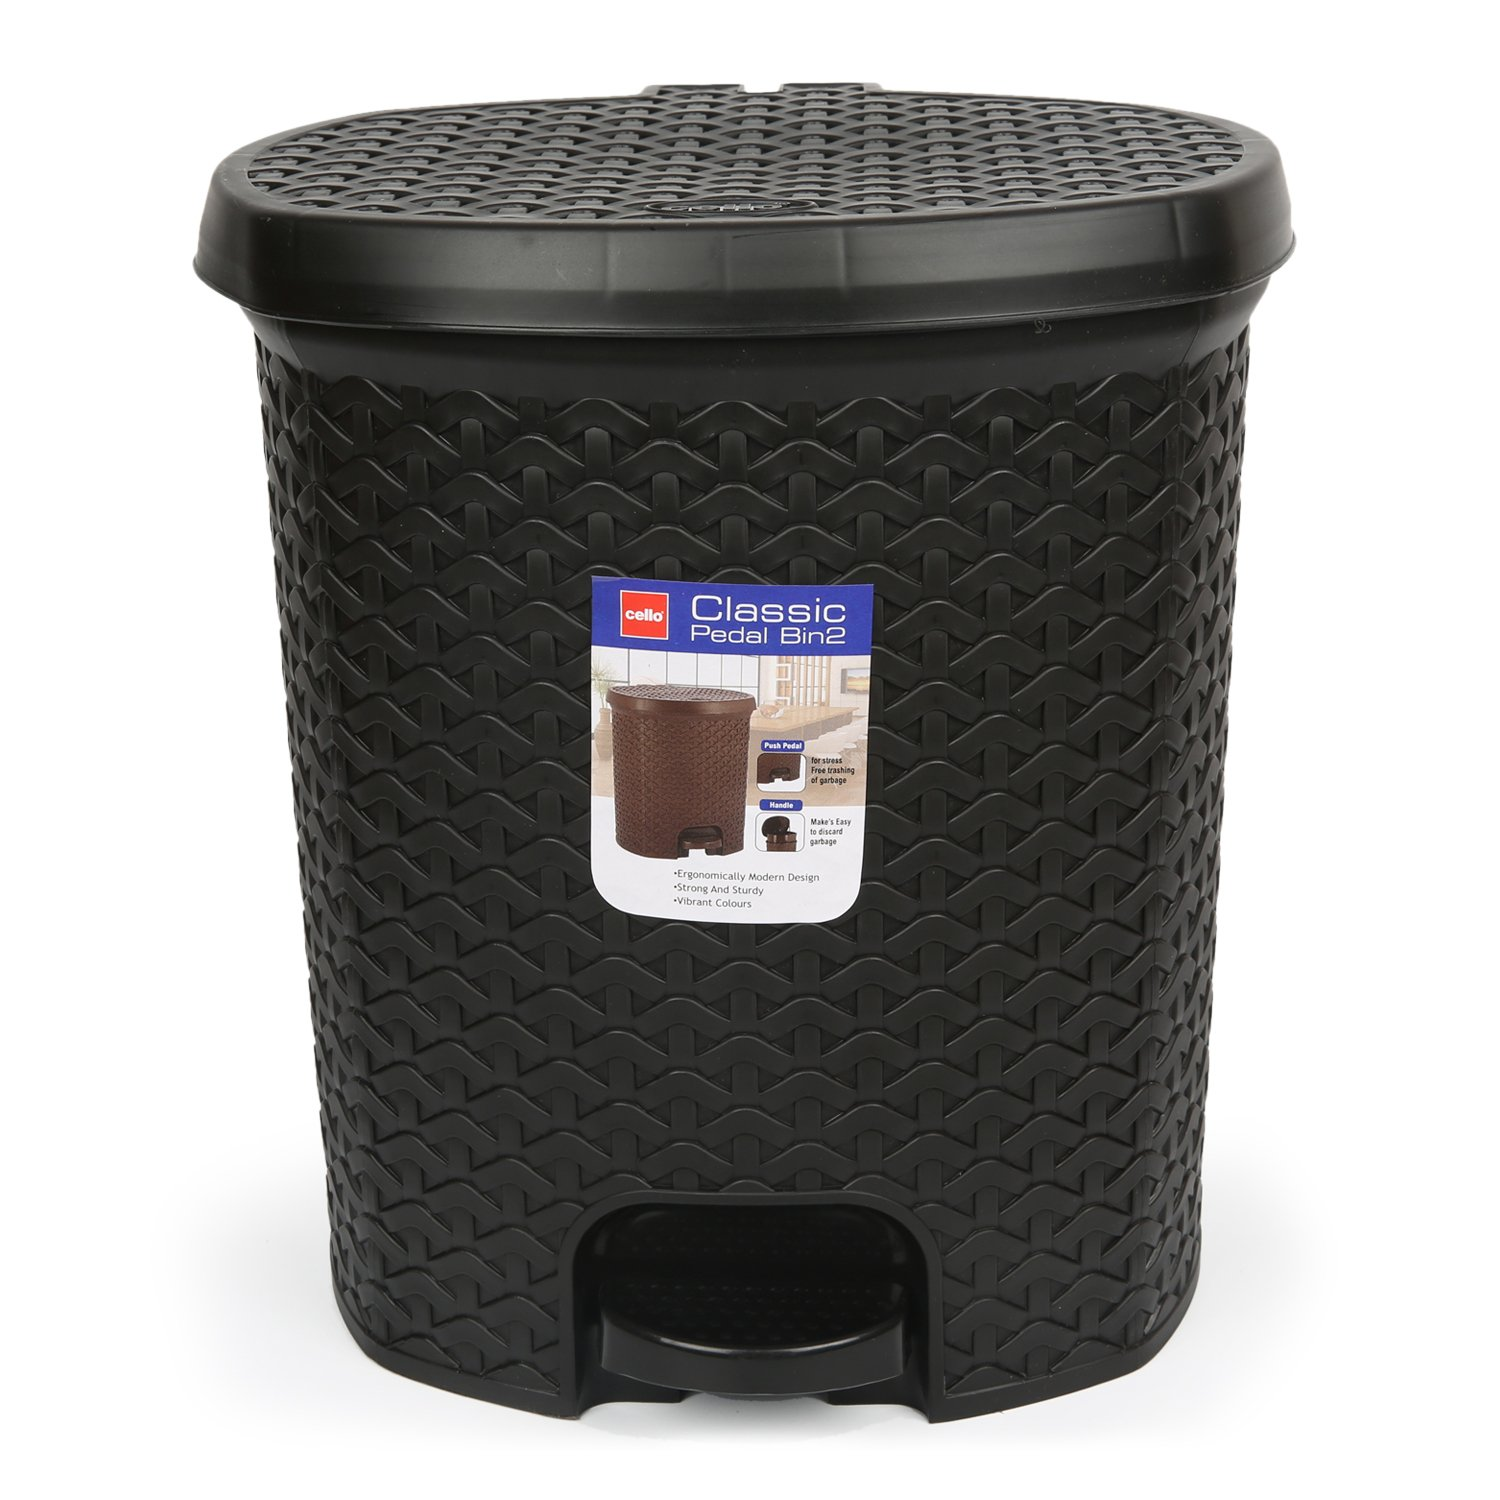 Cello Classic Plastic Pedal Dustbin, 12 Liters, Black